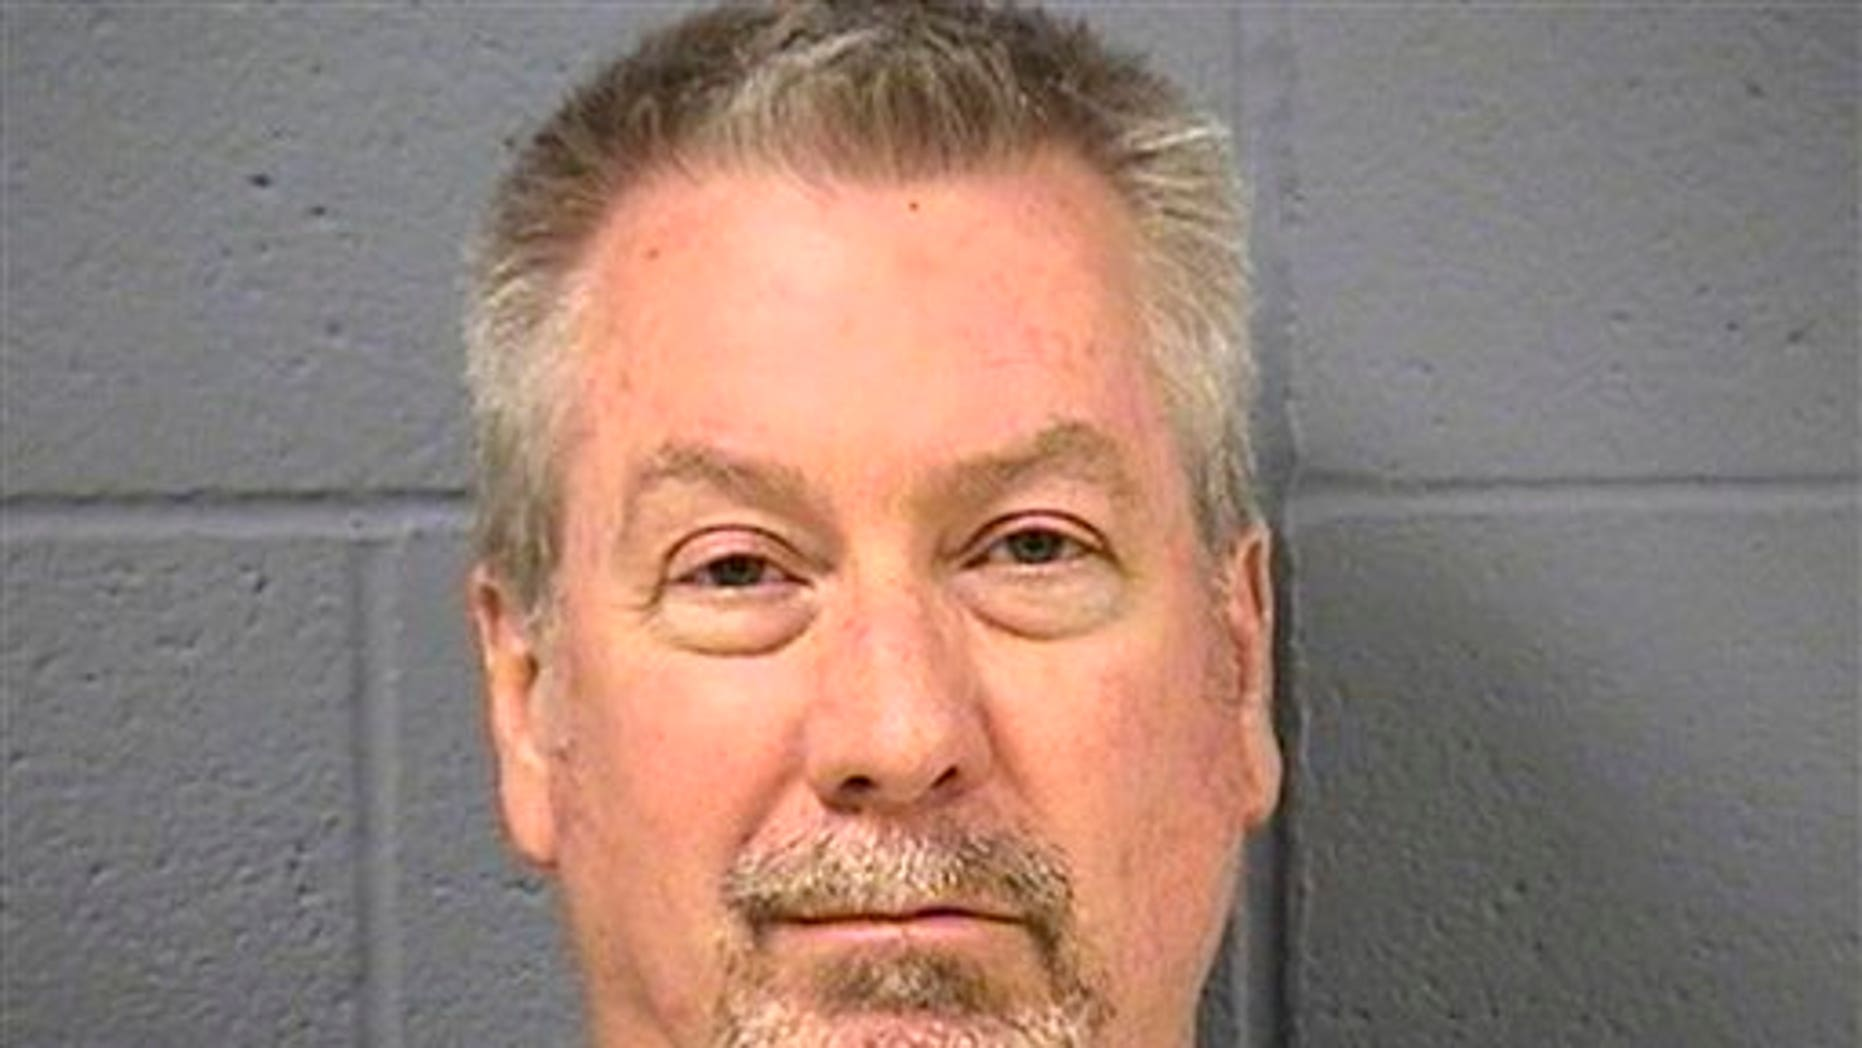 July 23, 2012: In this May 7, 2009 file booking photo provided by the Will County Sheriff's office in Joliet, Ill., former Bolingbrook, Ill., police sergeant Drew Peterson is shown.